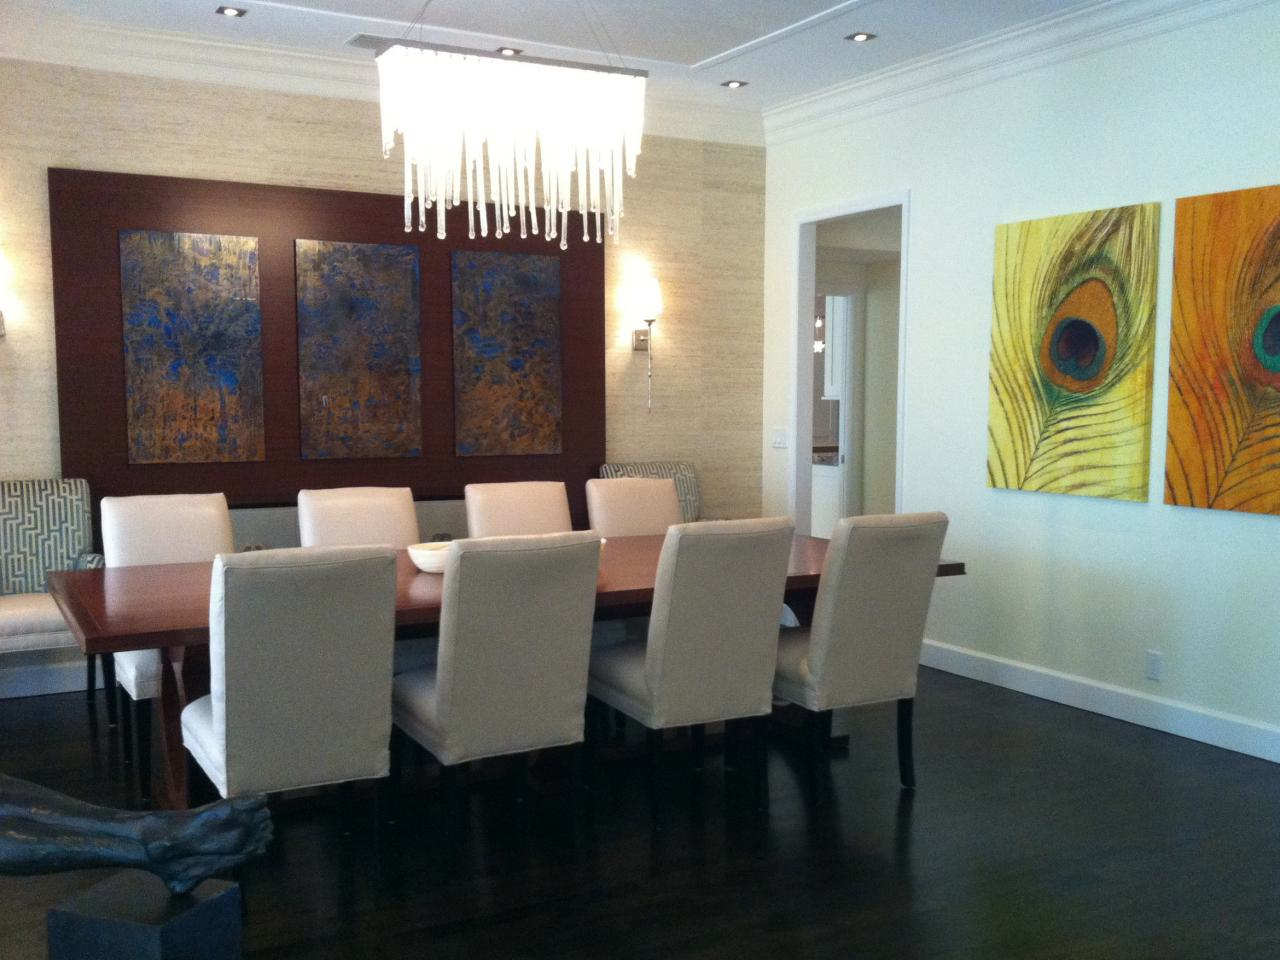 VIEW IN GALLERY Awesome Modern Dining Room Chandelier Great For Contemporary Design